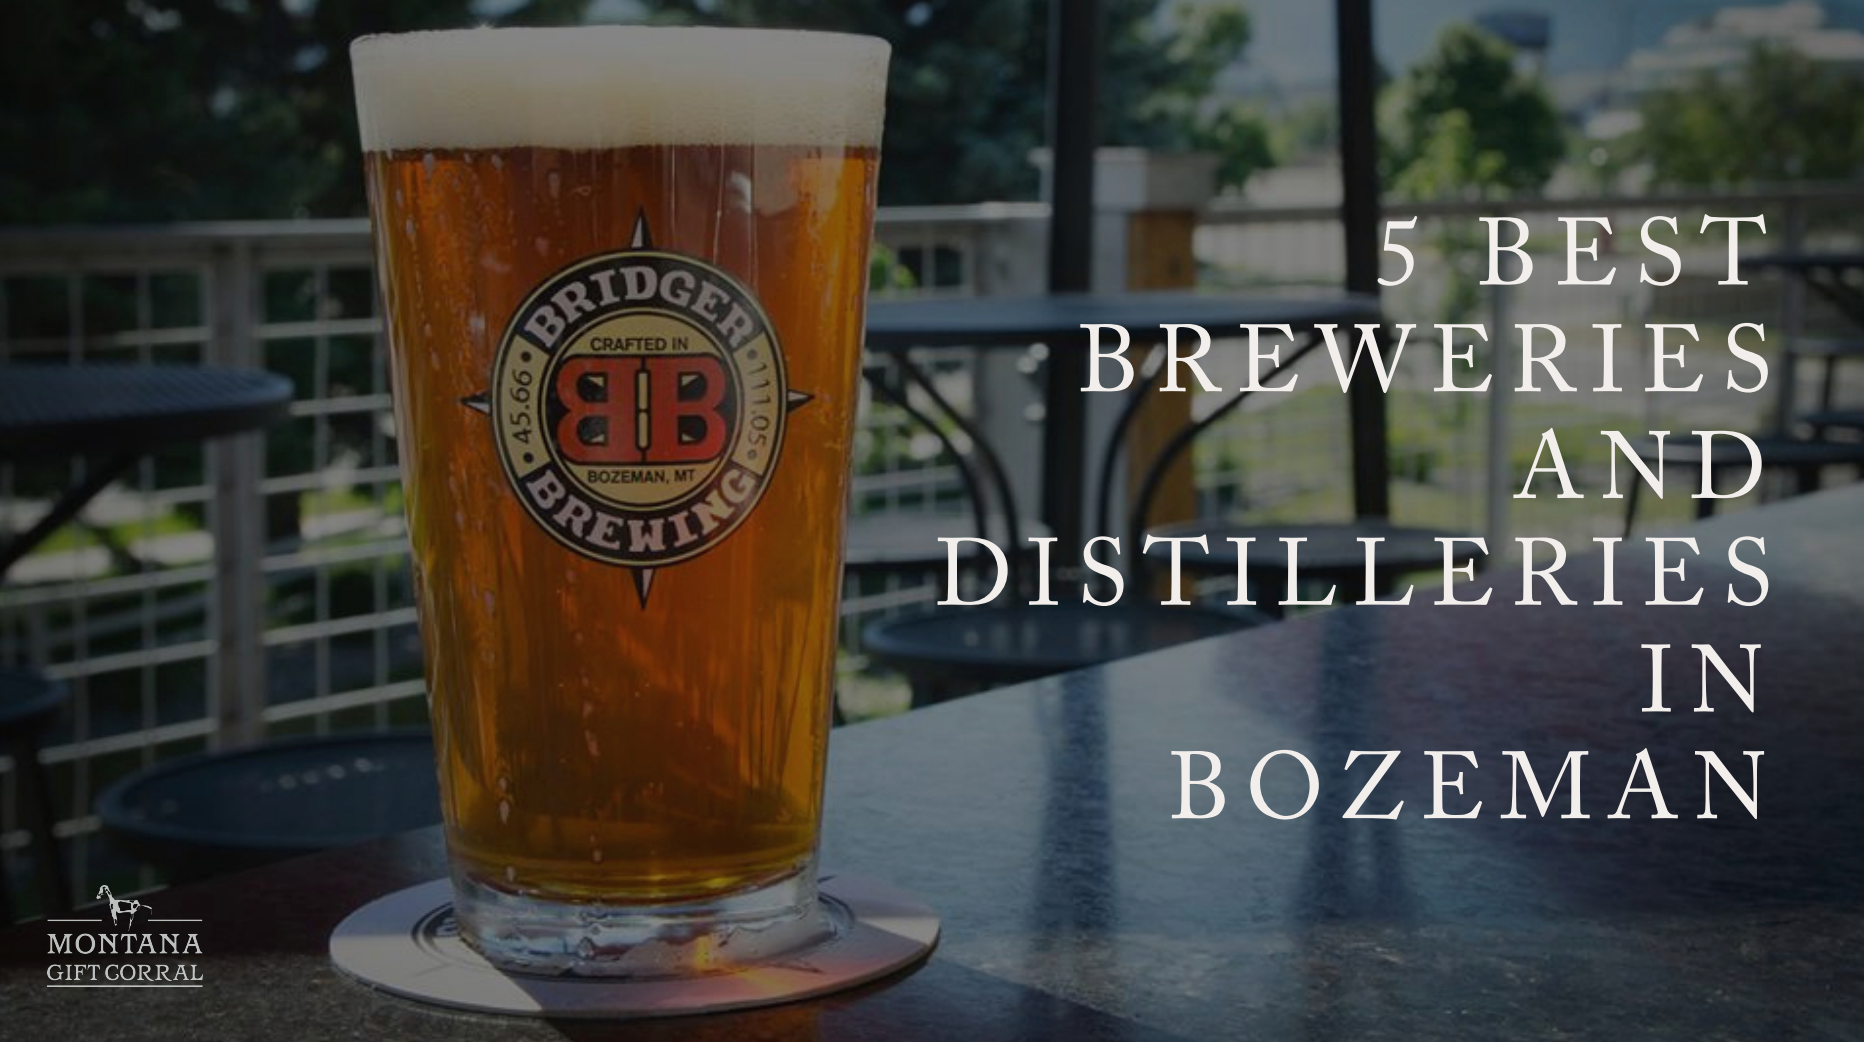 5 best breweries and distilleries in Bozeman Montana